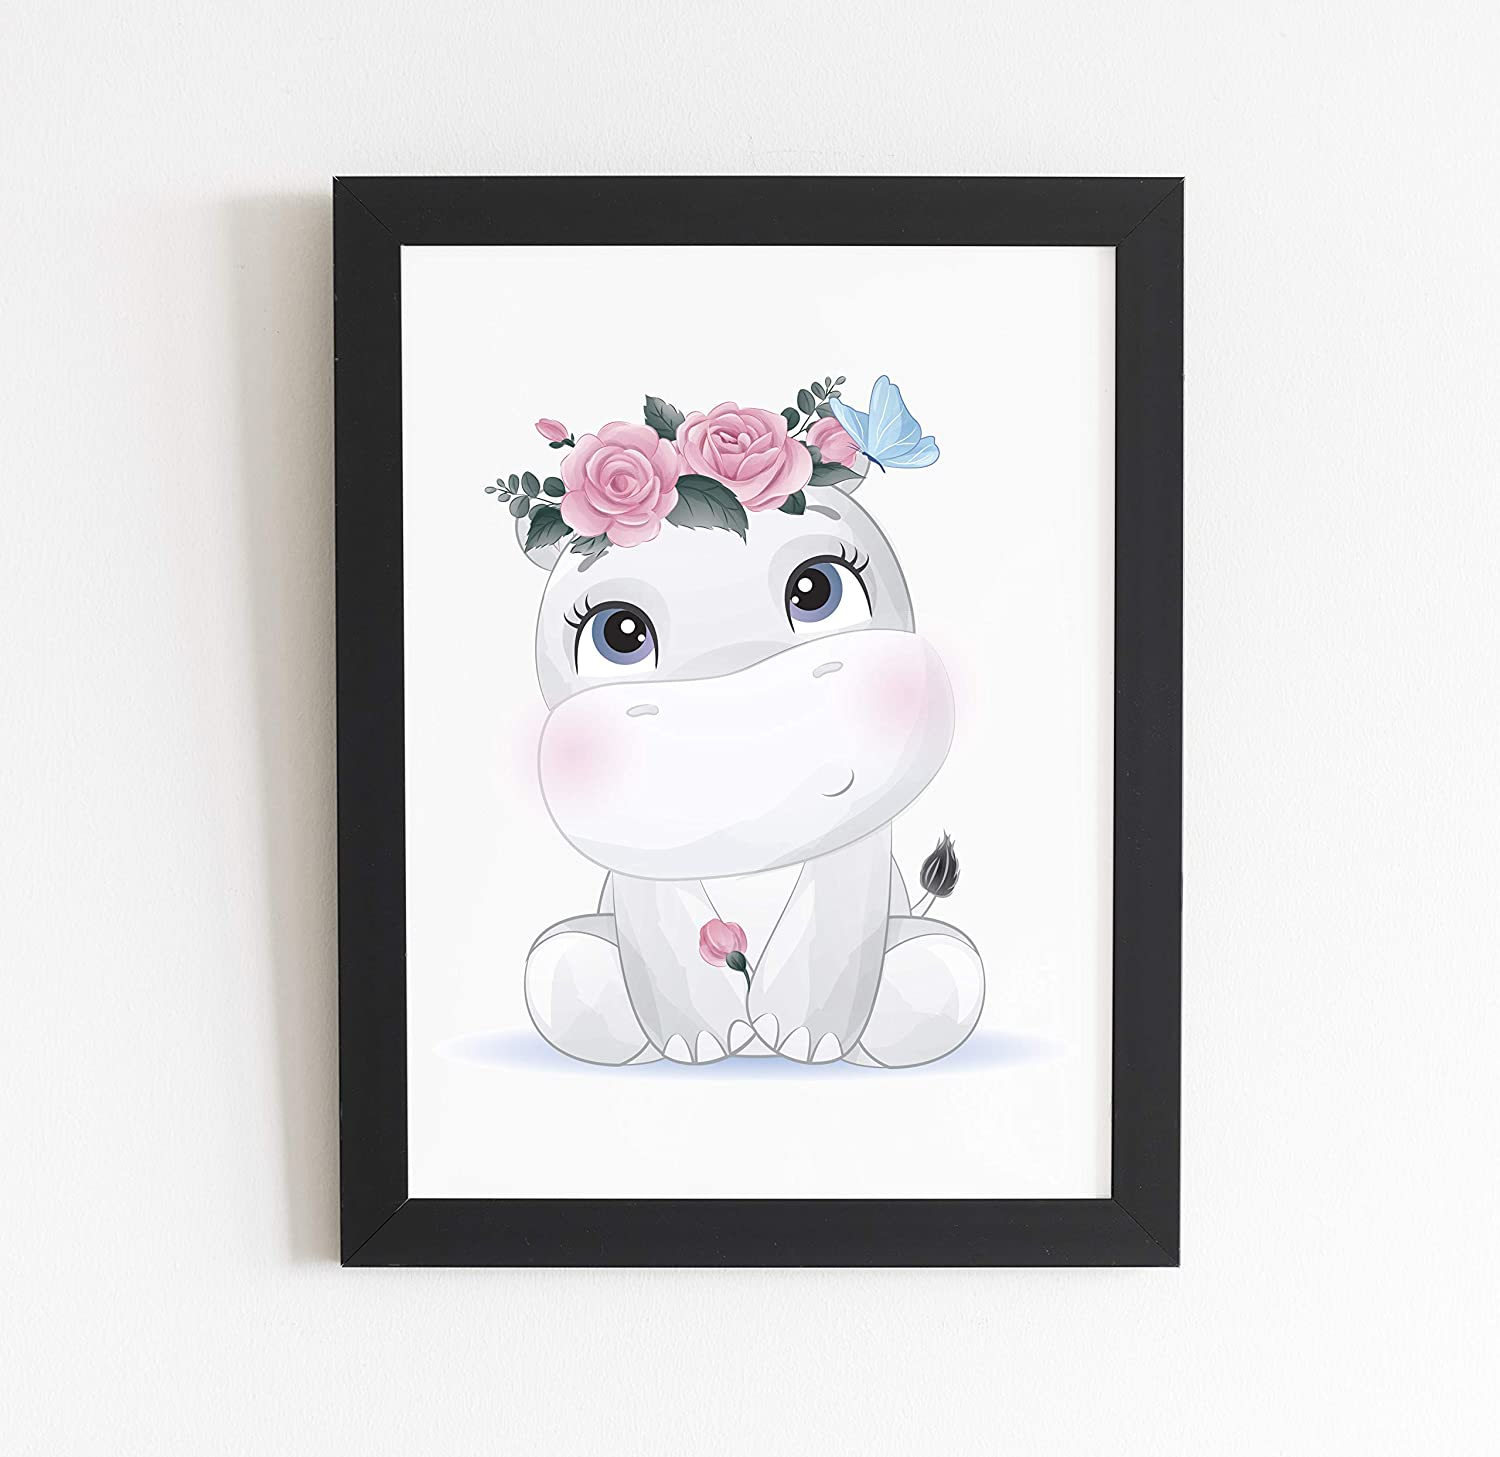 Baby Hippo With Flower Crown | Girls Room Decor, Boho Nursery, Baby Animal Prints, Nursery Wall Art | Kids Bedroom Decor , Girl Unique Birthday Party Decoration | Unframed Wall Poster - 8.5 X 11 Inch